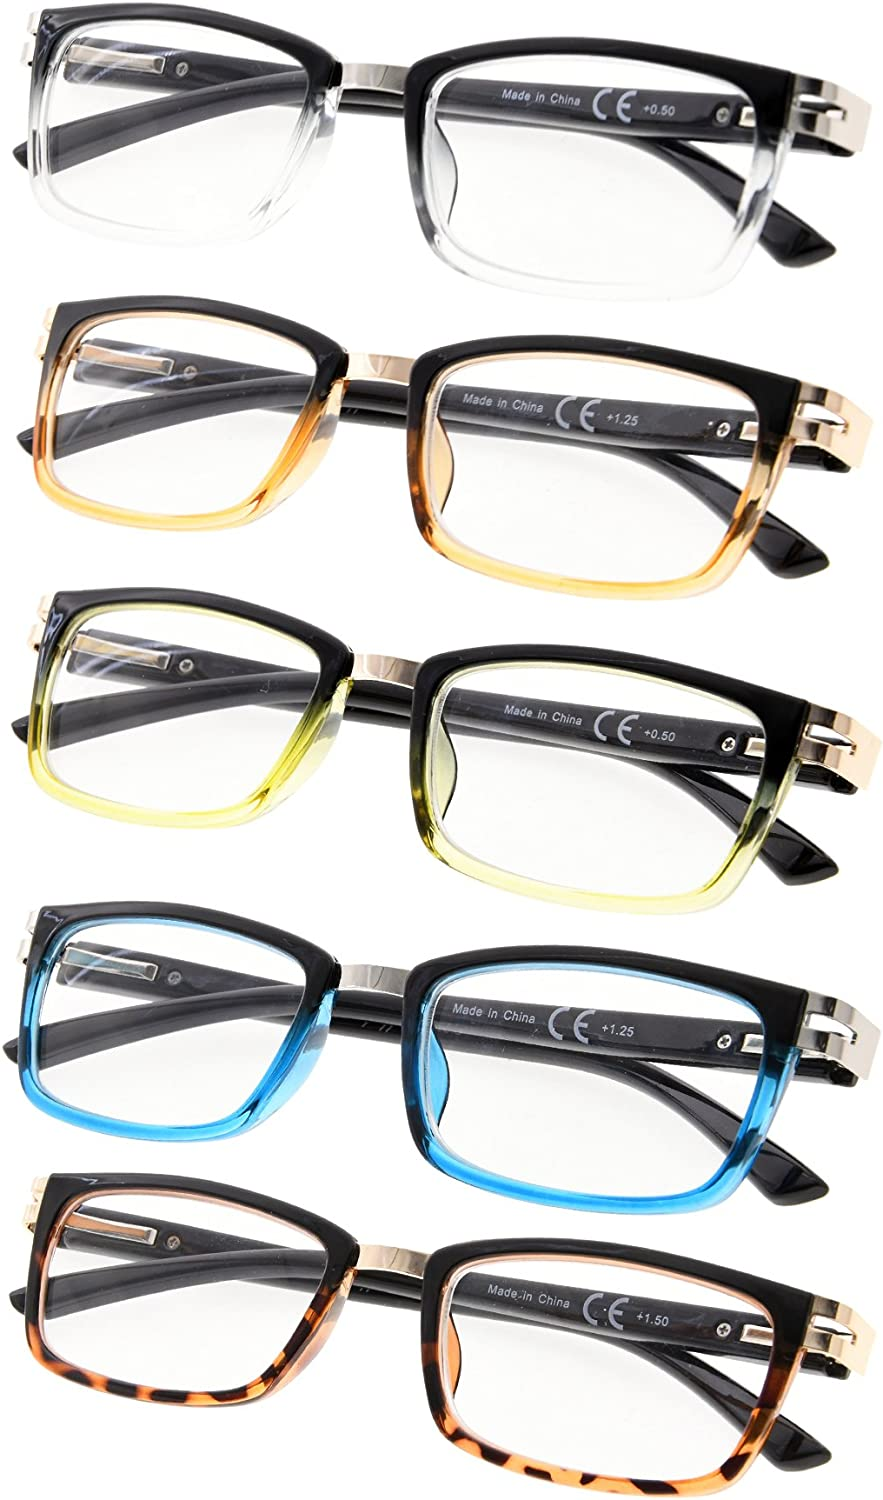 5Pack Reading Glasses with Spring Hinges